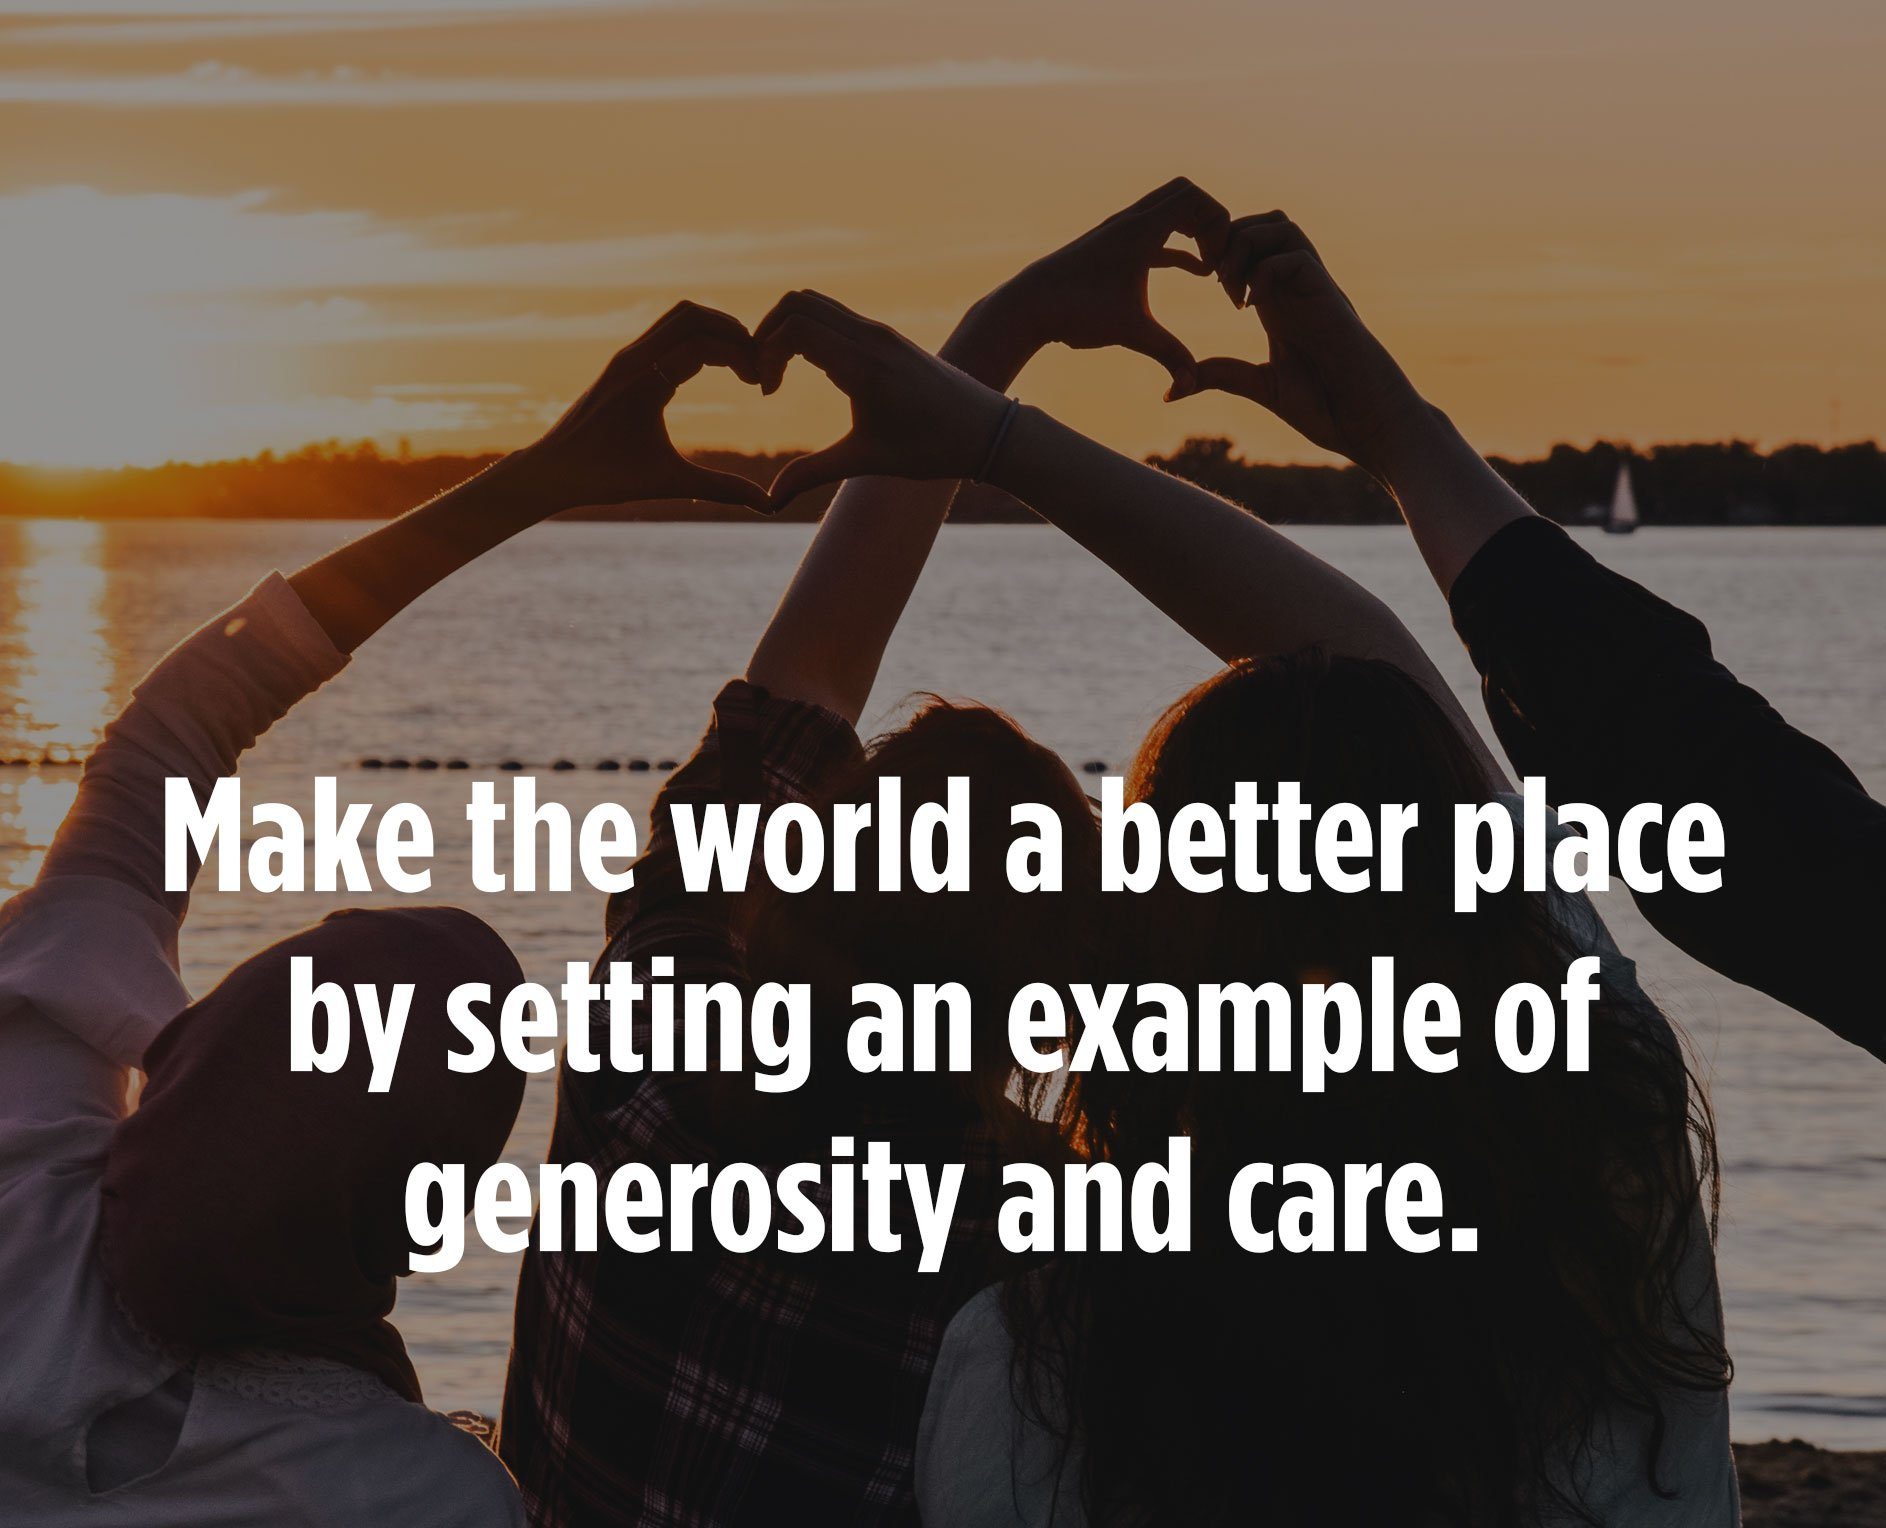 Make the world a better place by setting an example of generosity and care.